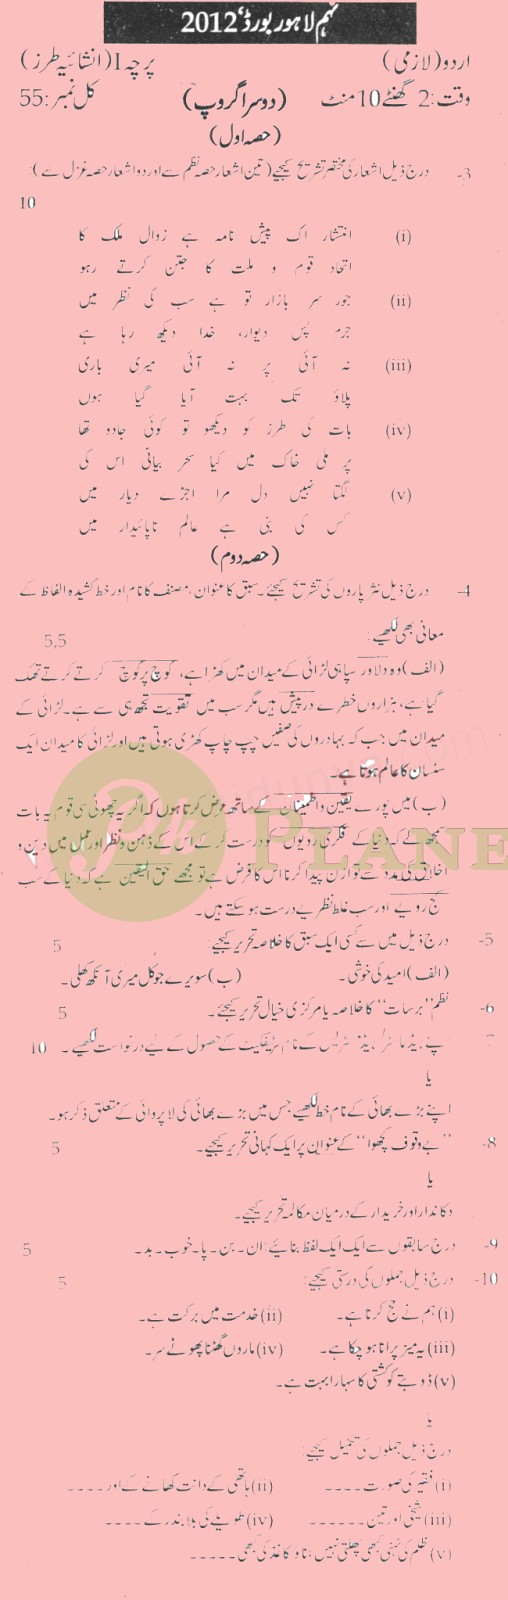 Past Papers of 9th Class Lahore Board 2012 Urdu